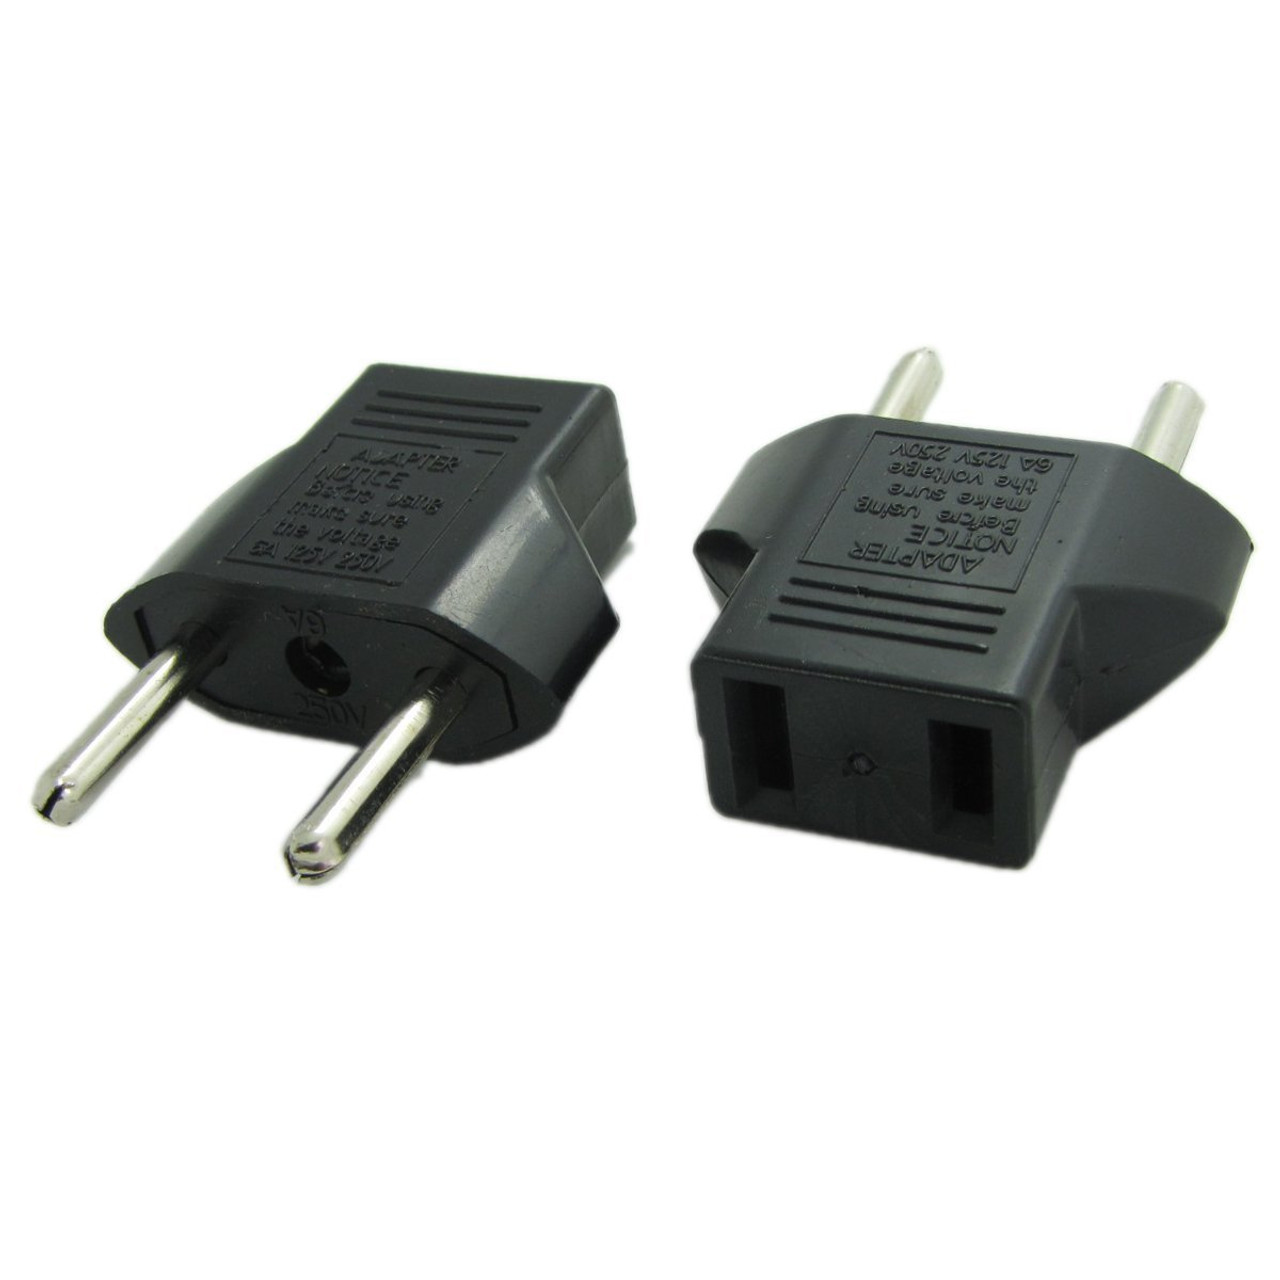 Fabulous American Us To European Eu Power Outlet Plug Adapter 2 Prong Wiring 101 Vieworaxxcnl